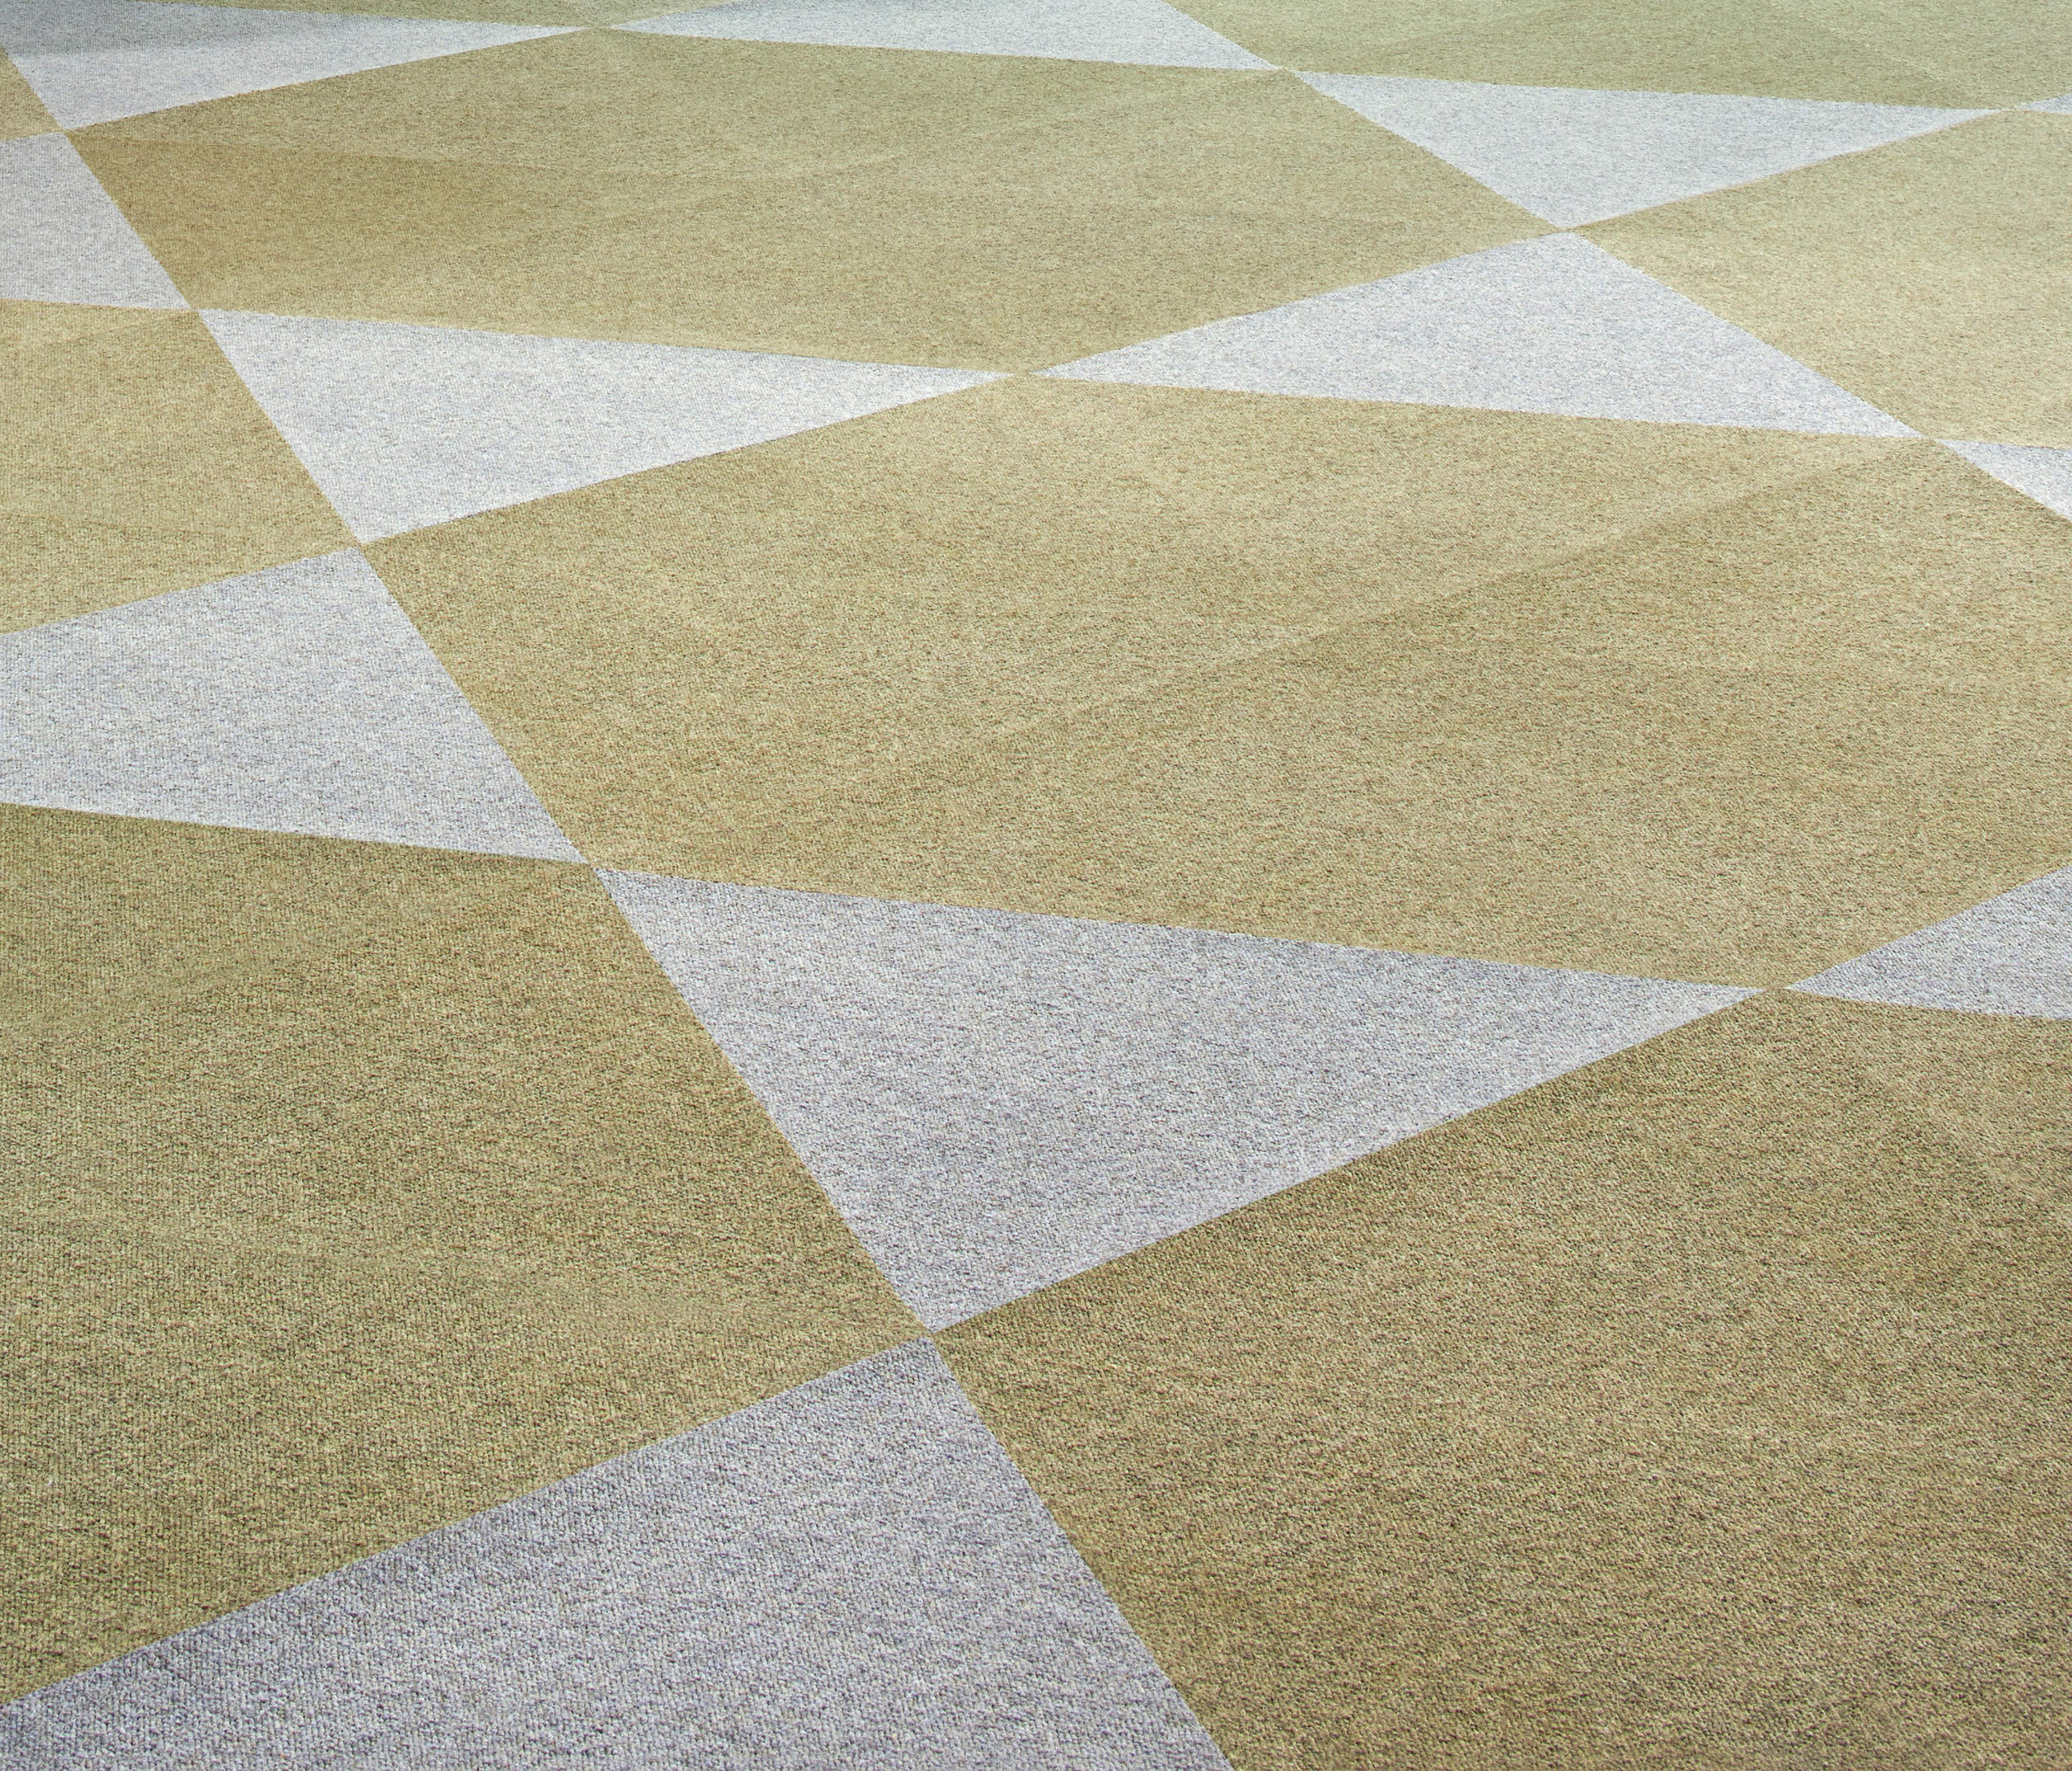 Rollerwool Trigon by Ruckstuhl | Carpet tiles